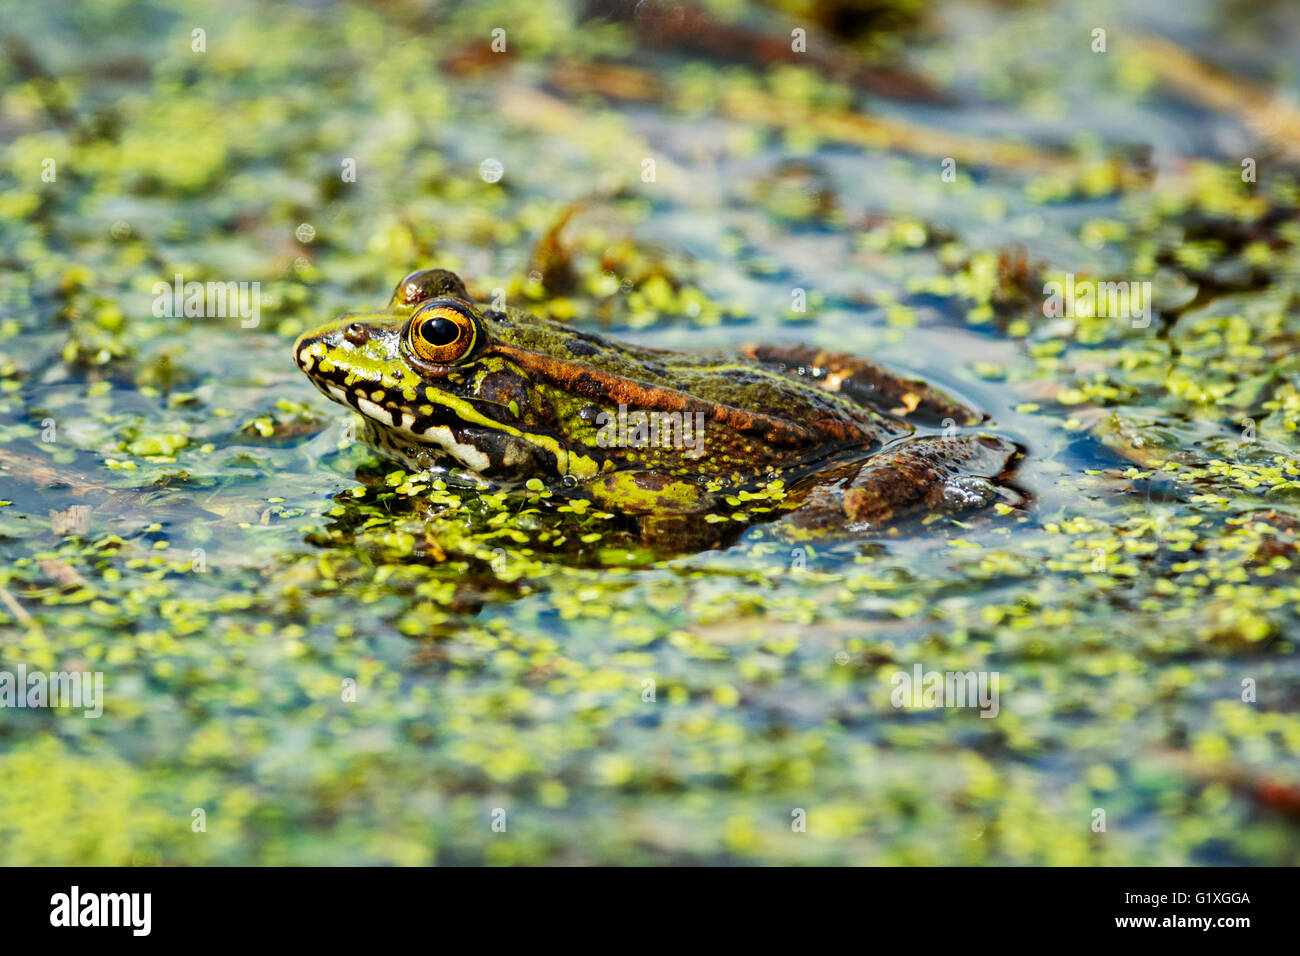 A marsh frog blending in with its surroundings Stock Photo